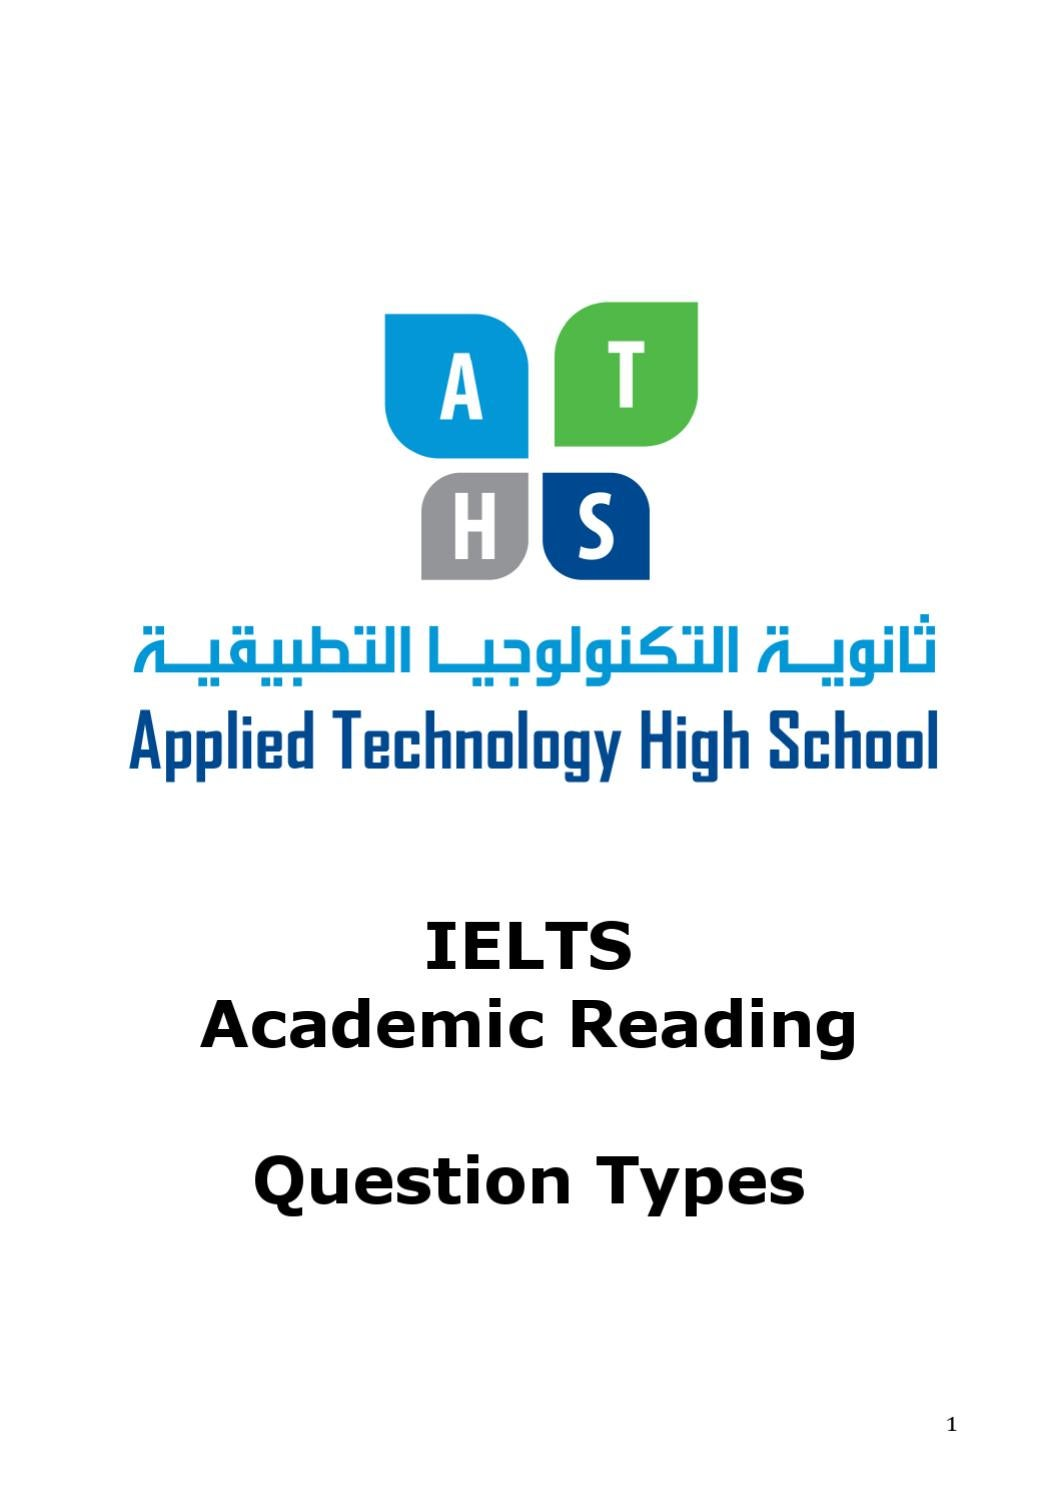 Ielts Academic Reading Questions Types By James Ohearn Issuu Electricity Is Produced From Coal Writing Task 1